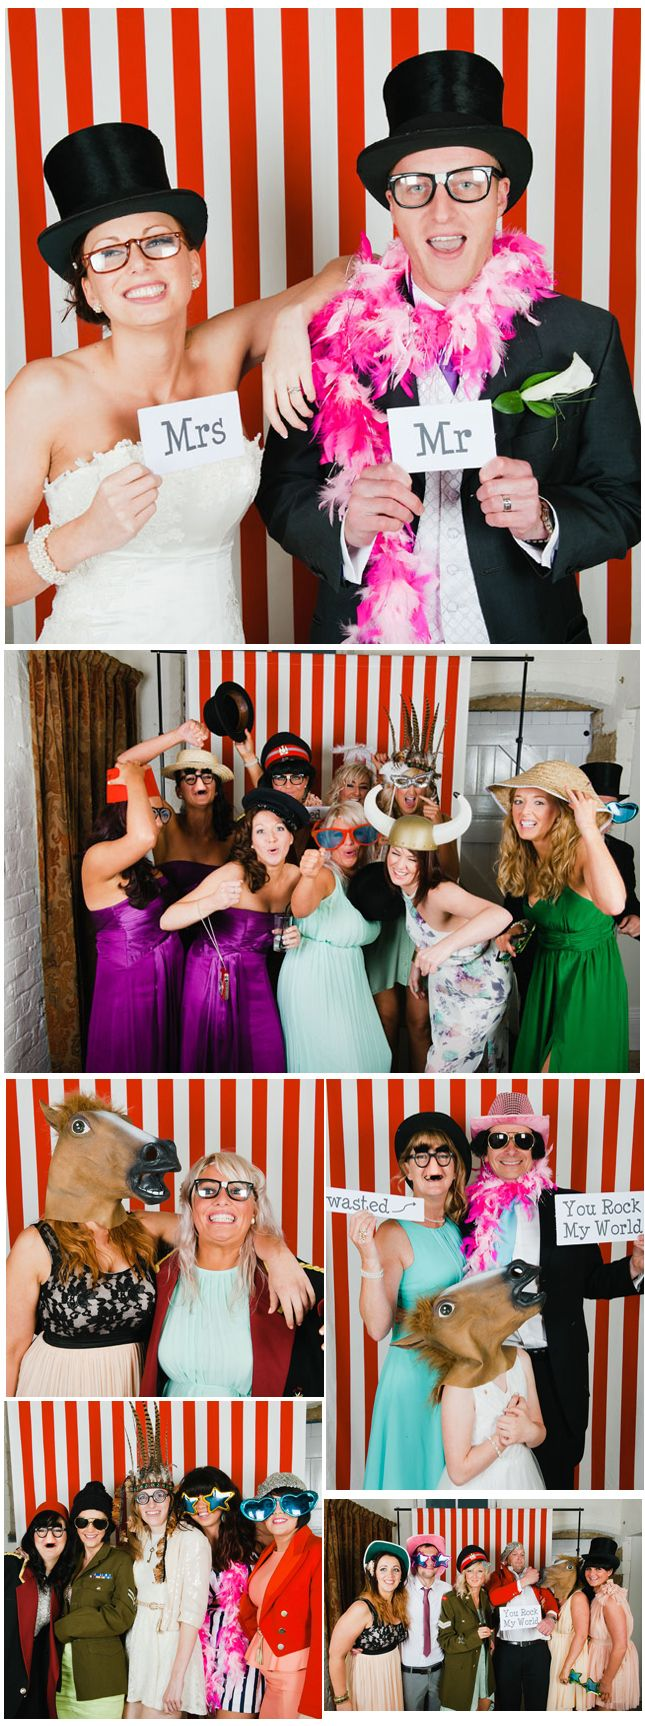 Photo Booths are great for entertainment in the evening - your guests will get really involved!